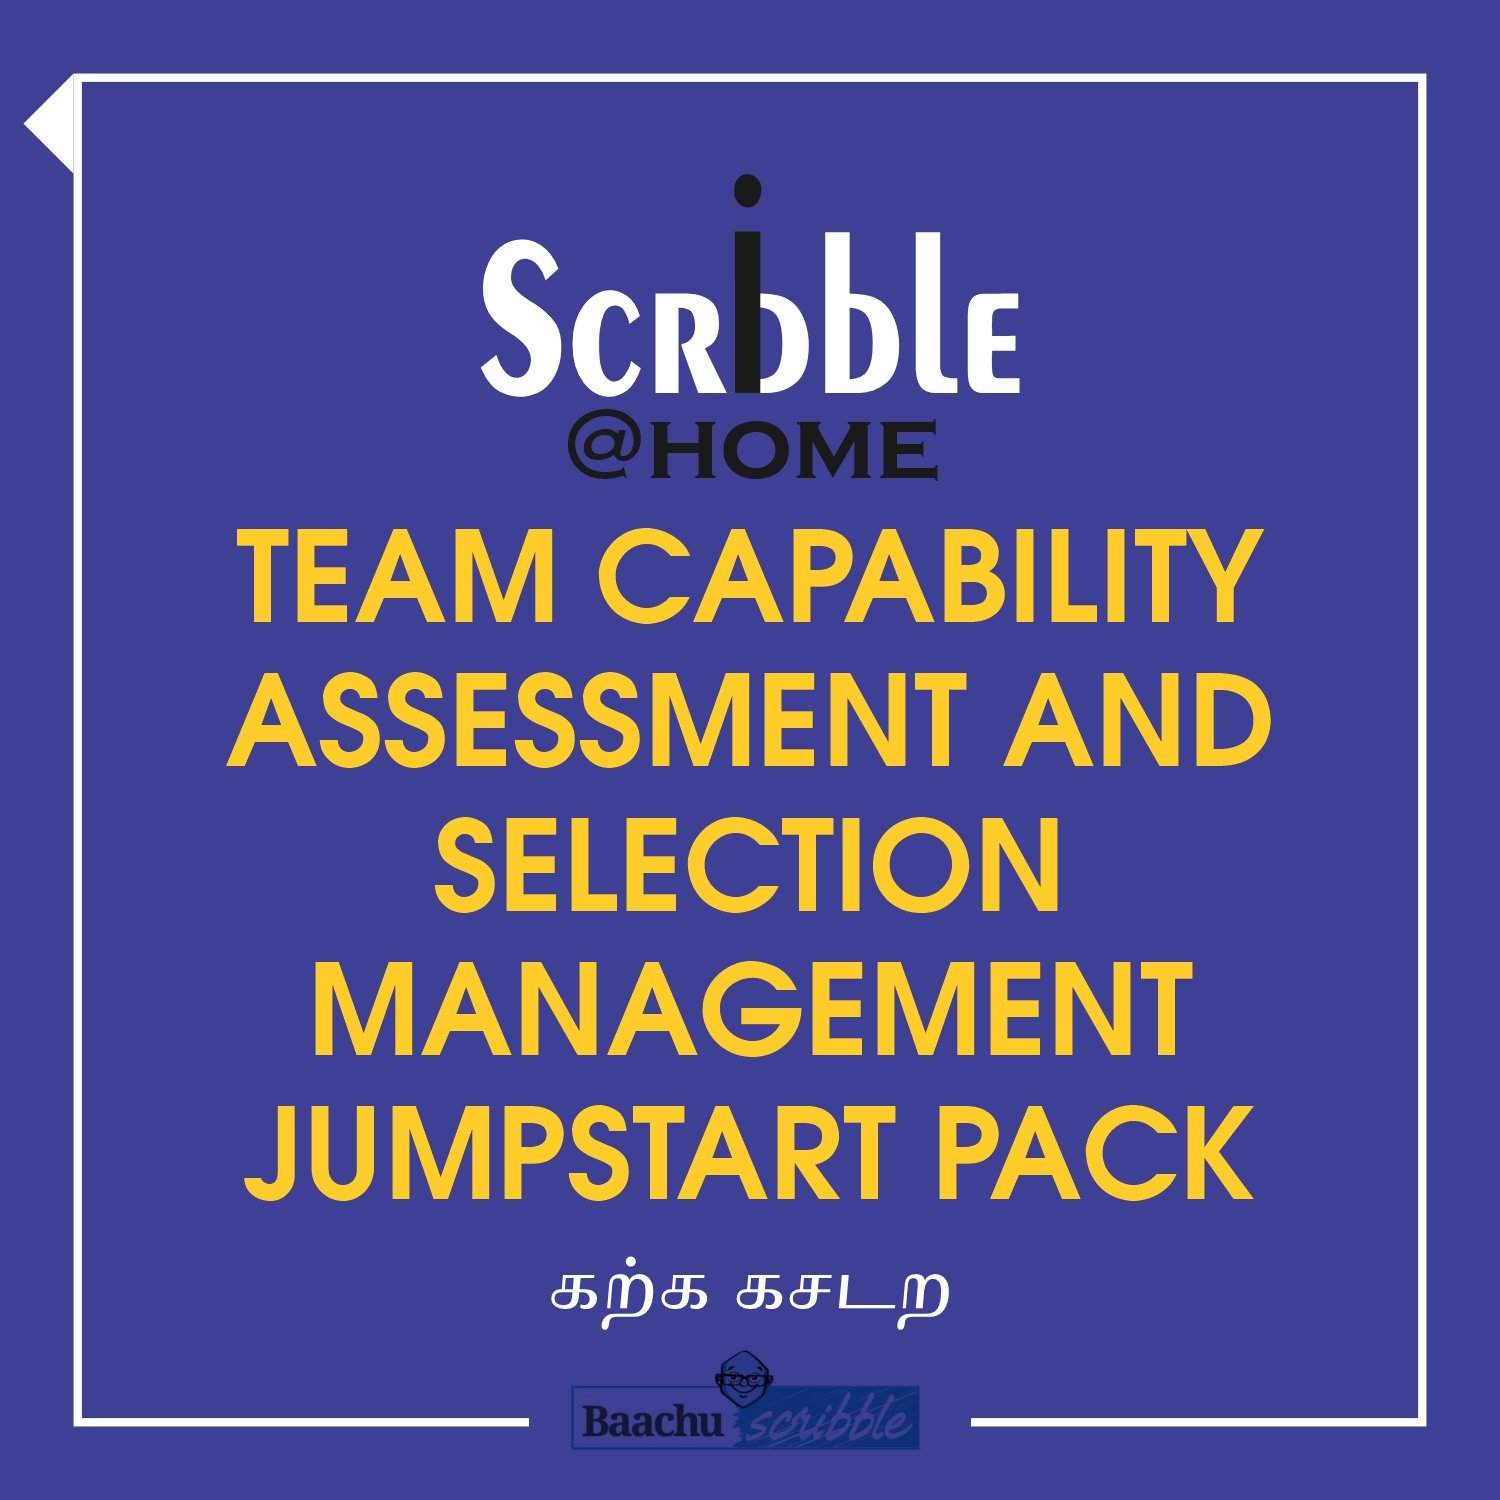 Team Capability Assessment and Selection Management Jumpstart Pack